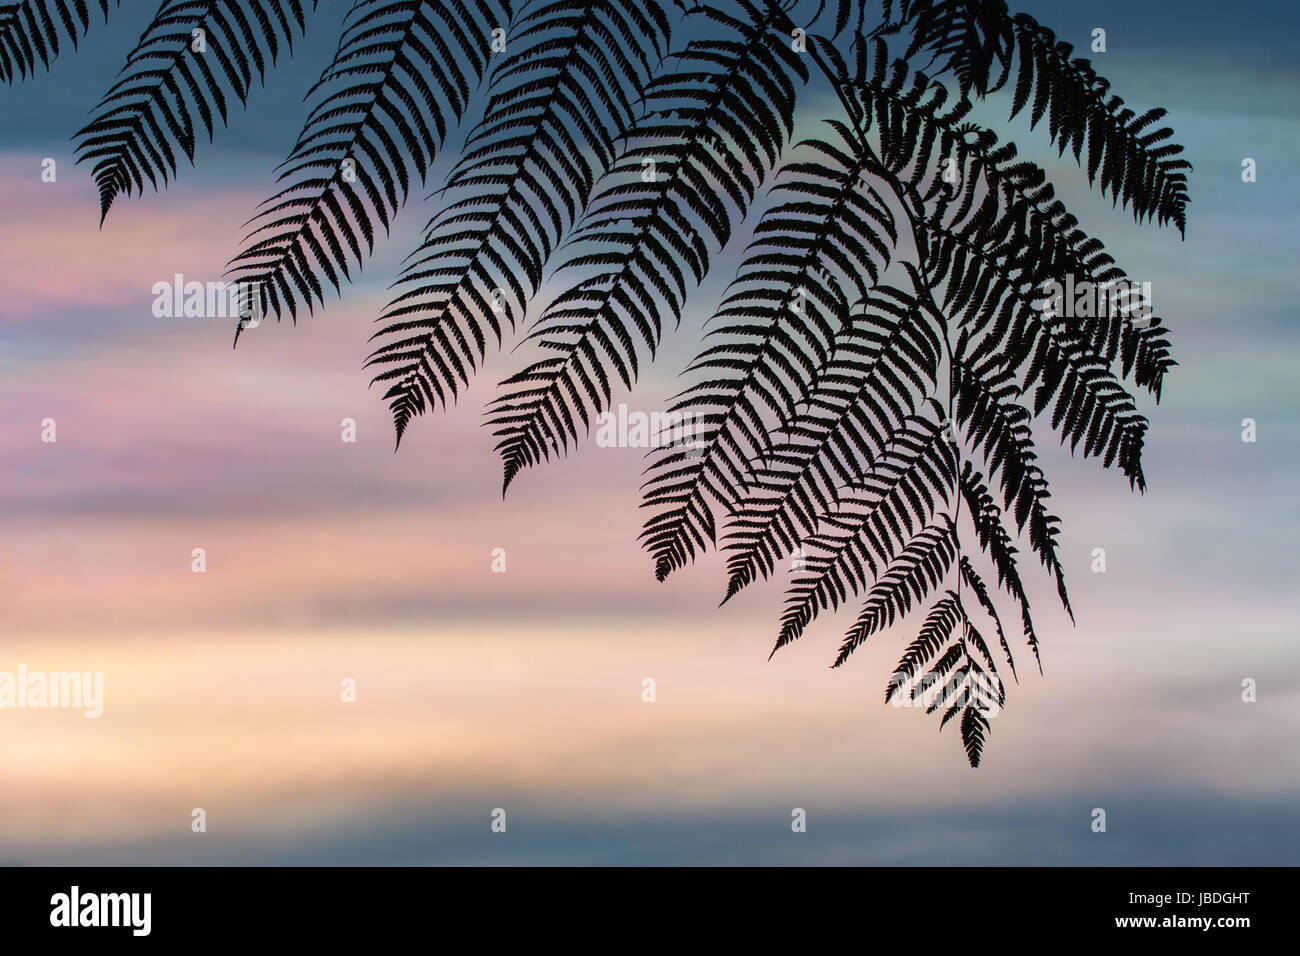 BALI, INDONESIA ASIA - Silhouette of a Fern leaf against a colourful iridescent sky or mother of pearl, at sunset. Stock Photo